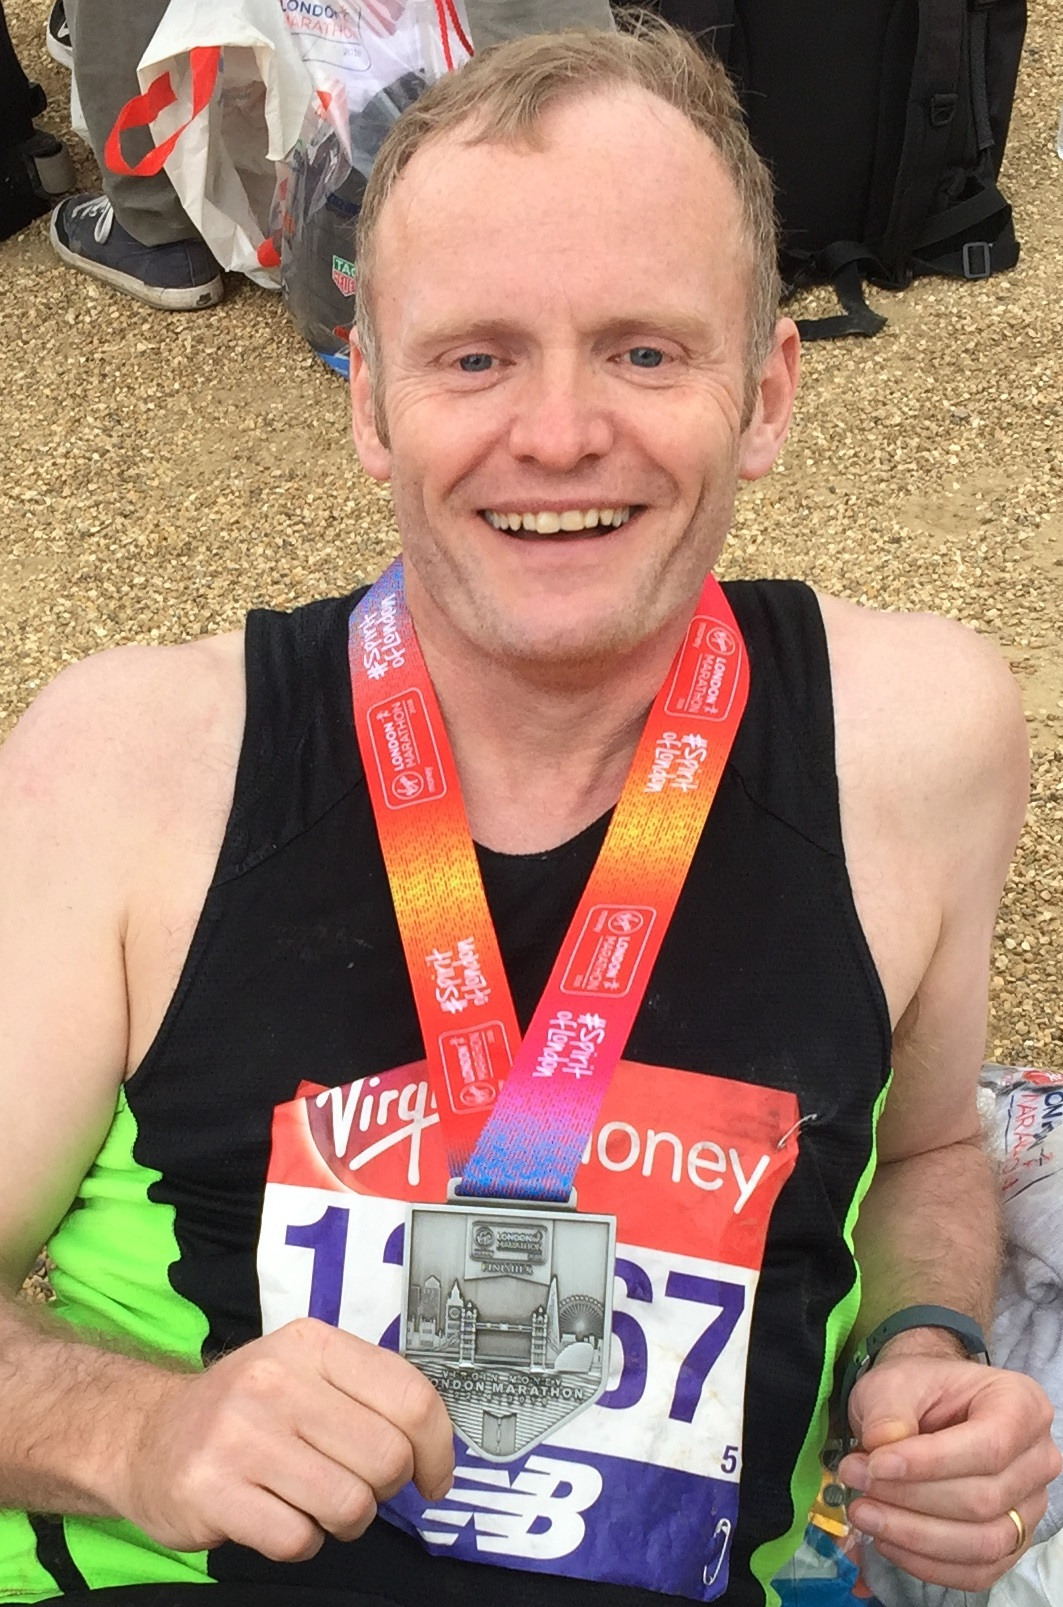 Chris Green shows off his London Marathon medal